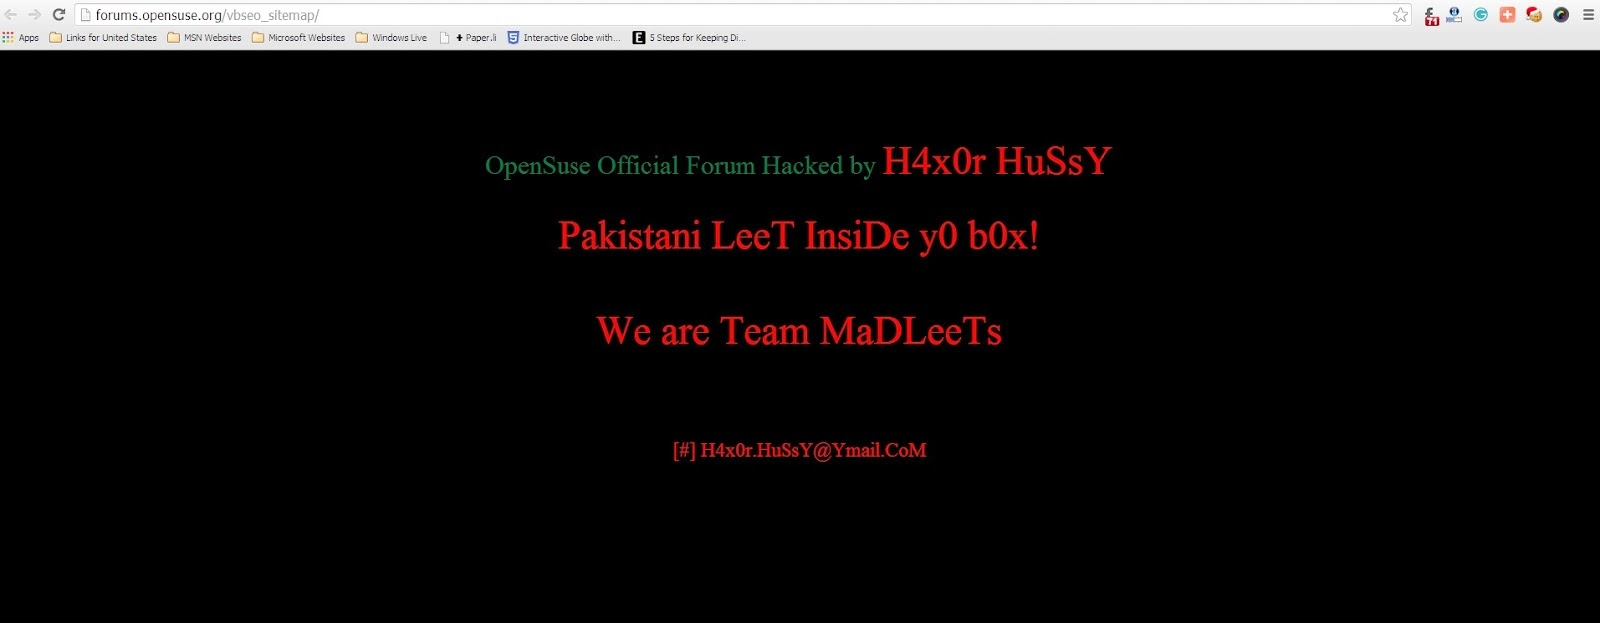 OpenSUSE forums hacked in Another vBulletin attack - Cyber Kendra